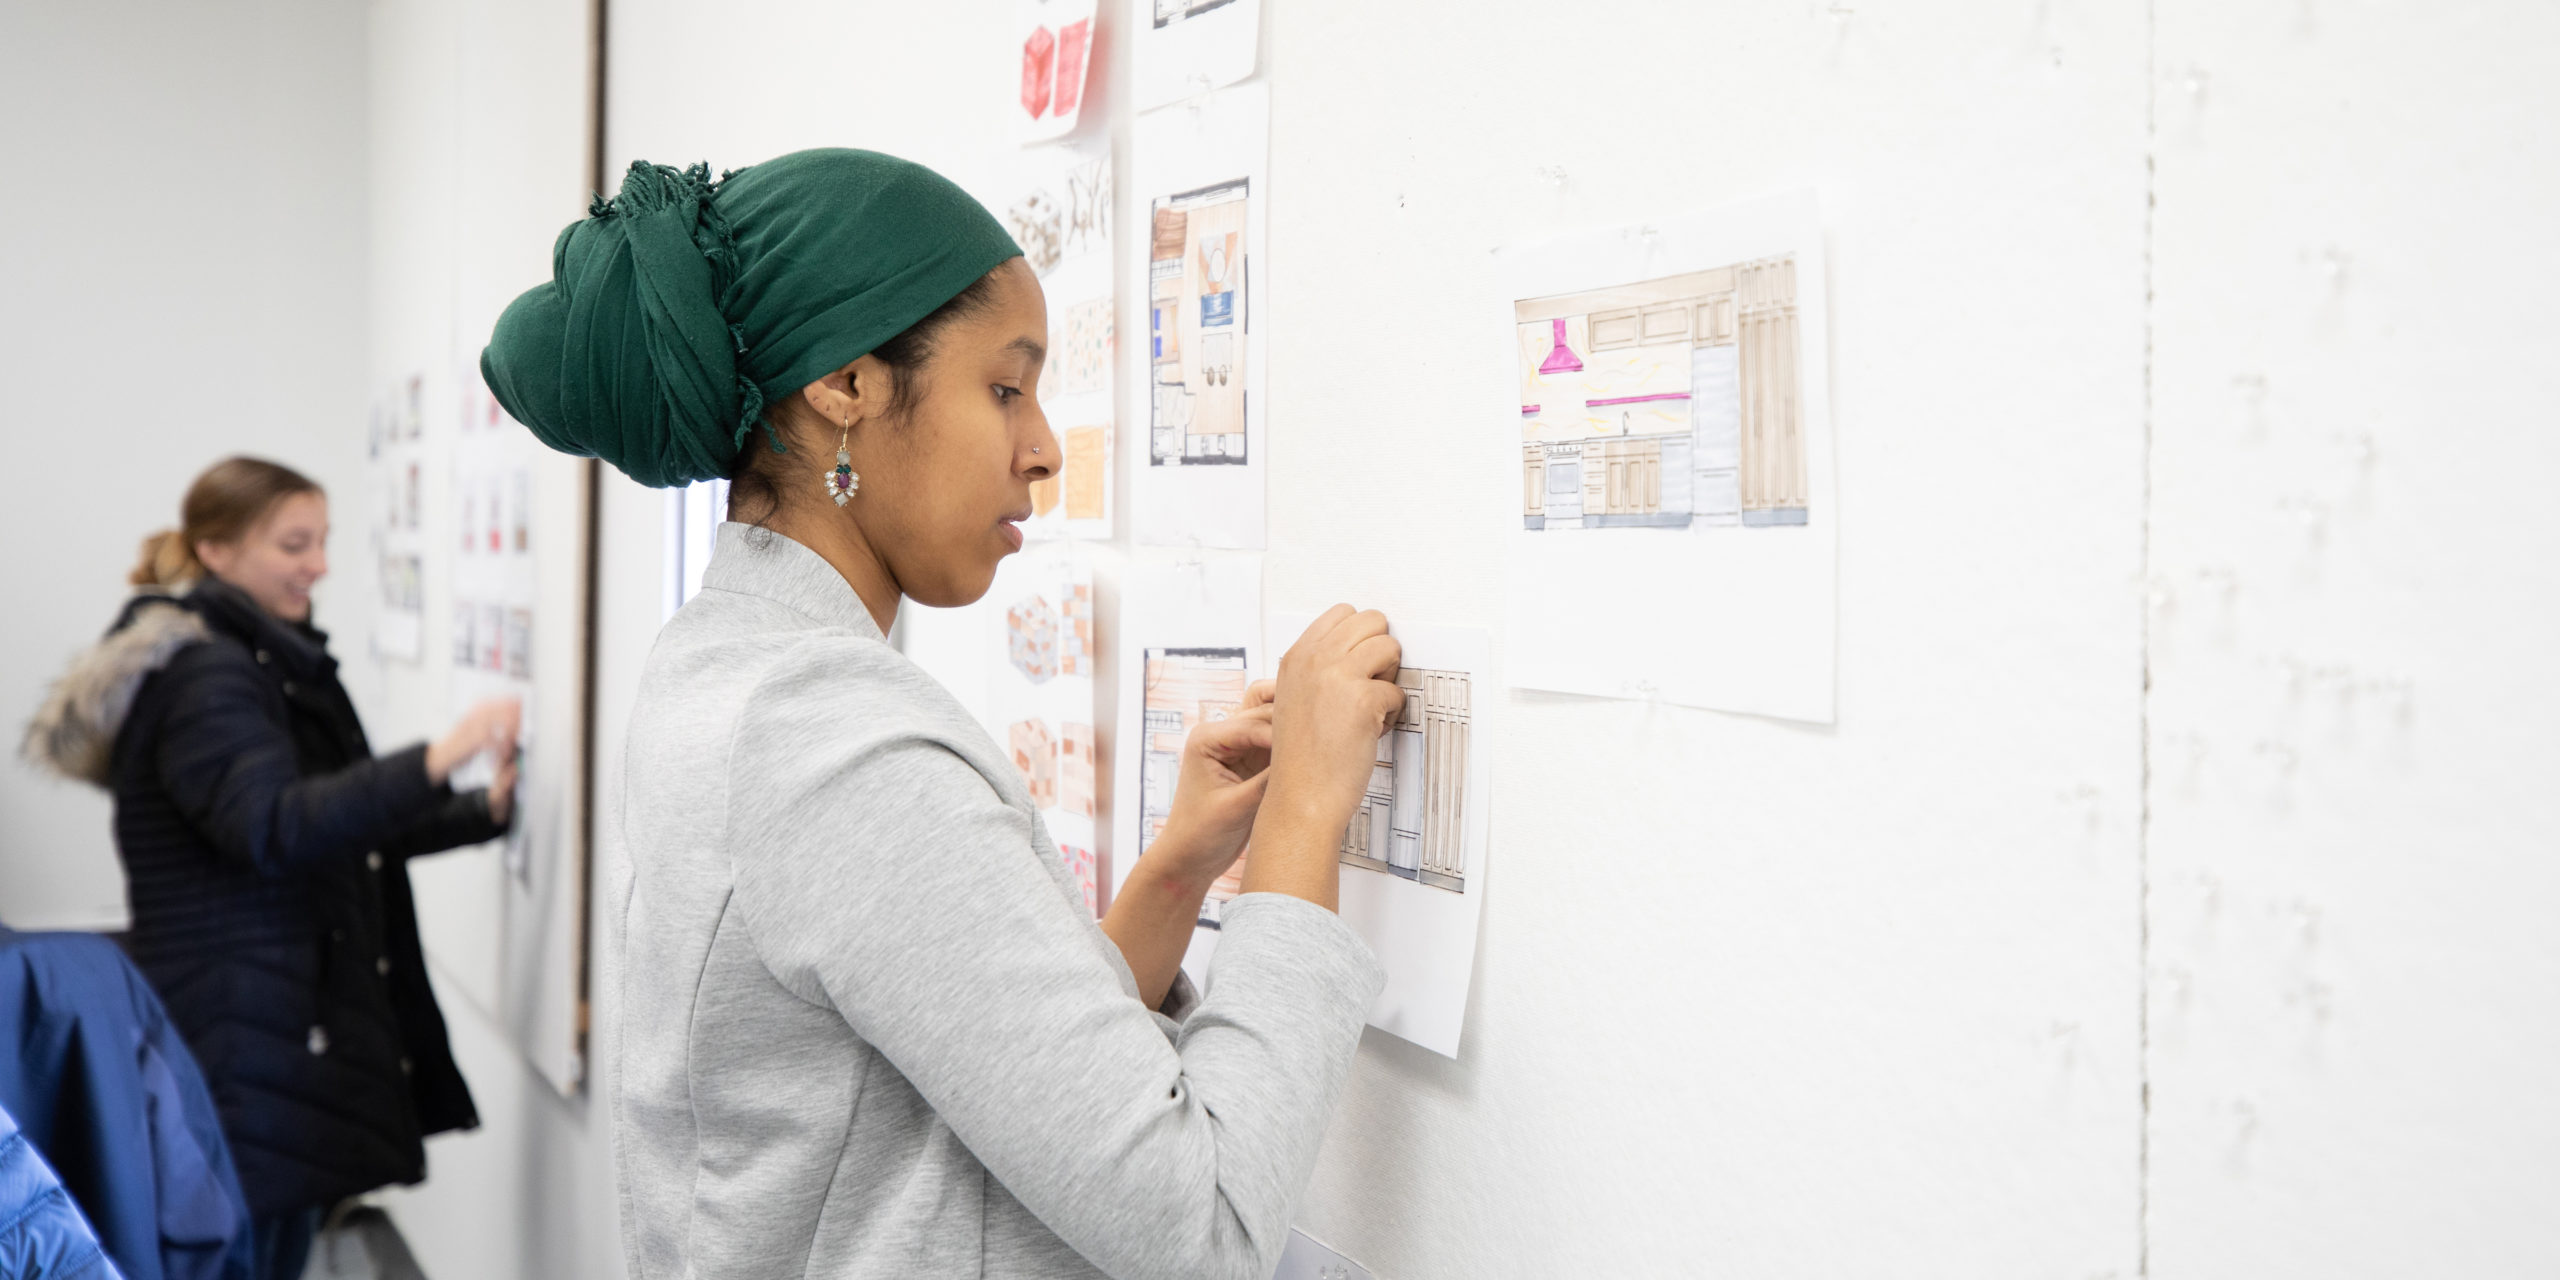 Student Sumeya Mohamed works on an Interior Design board